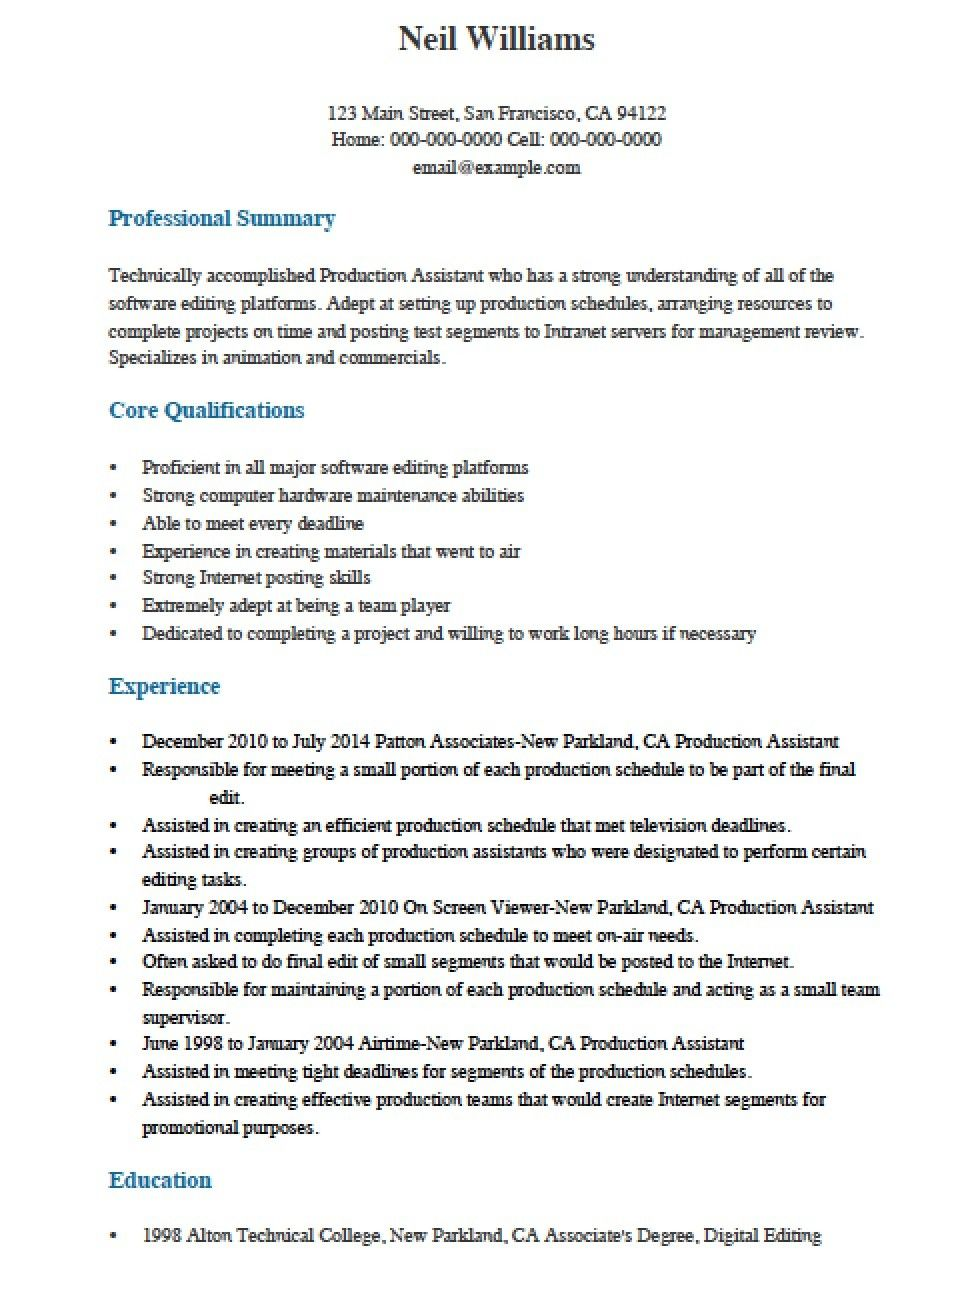 Top 20 Production assistant Resume Resume template